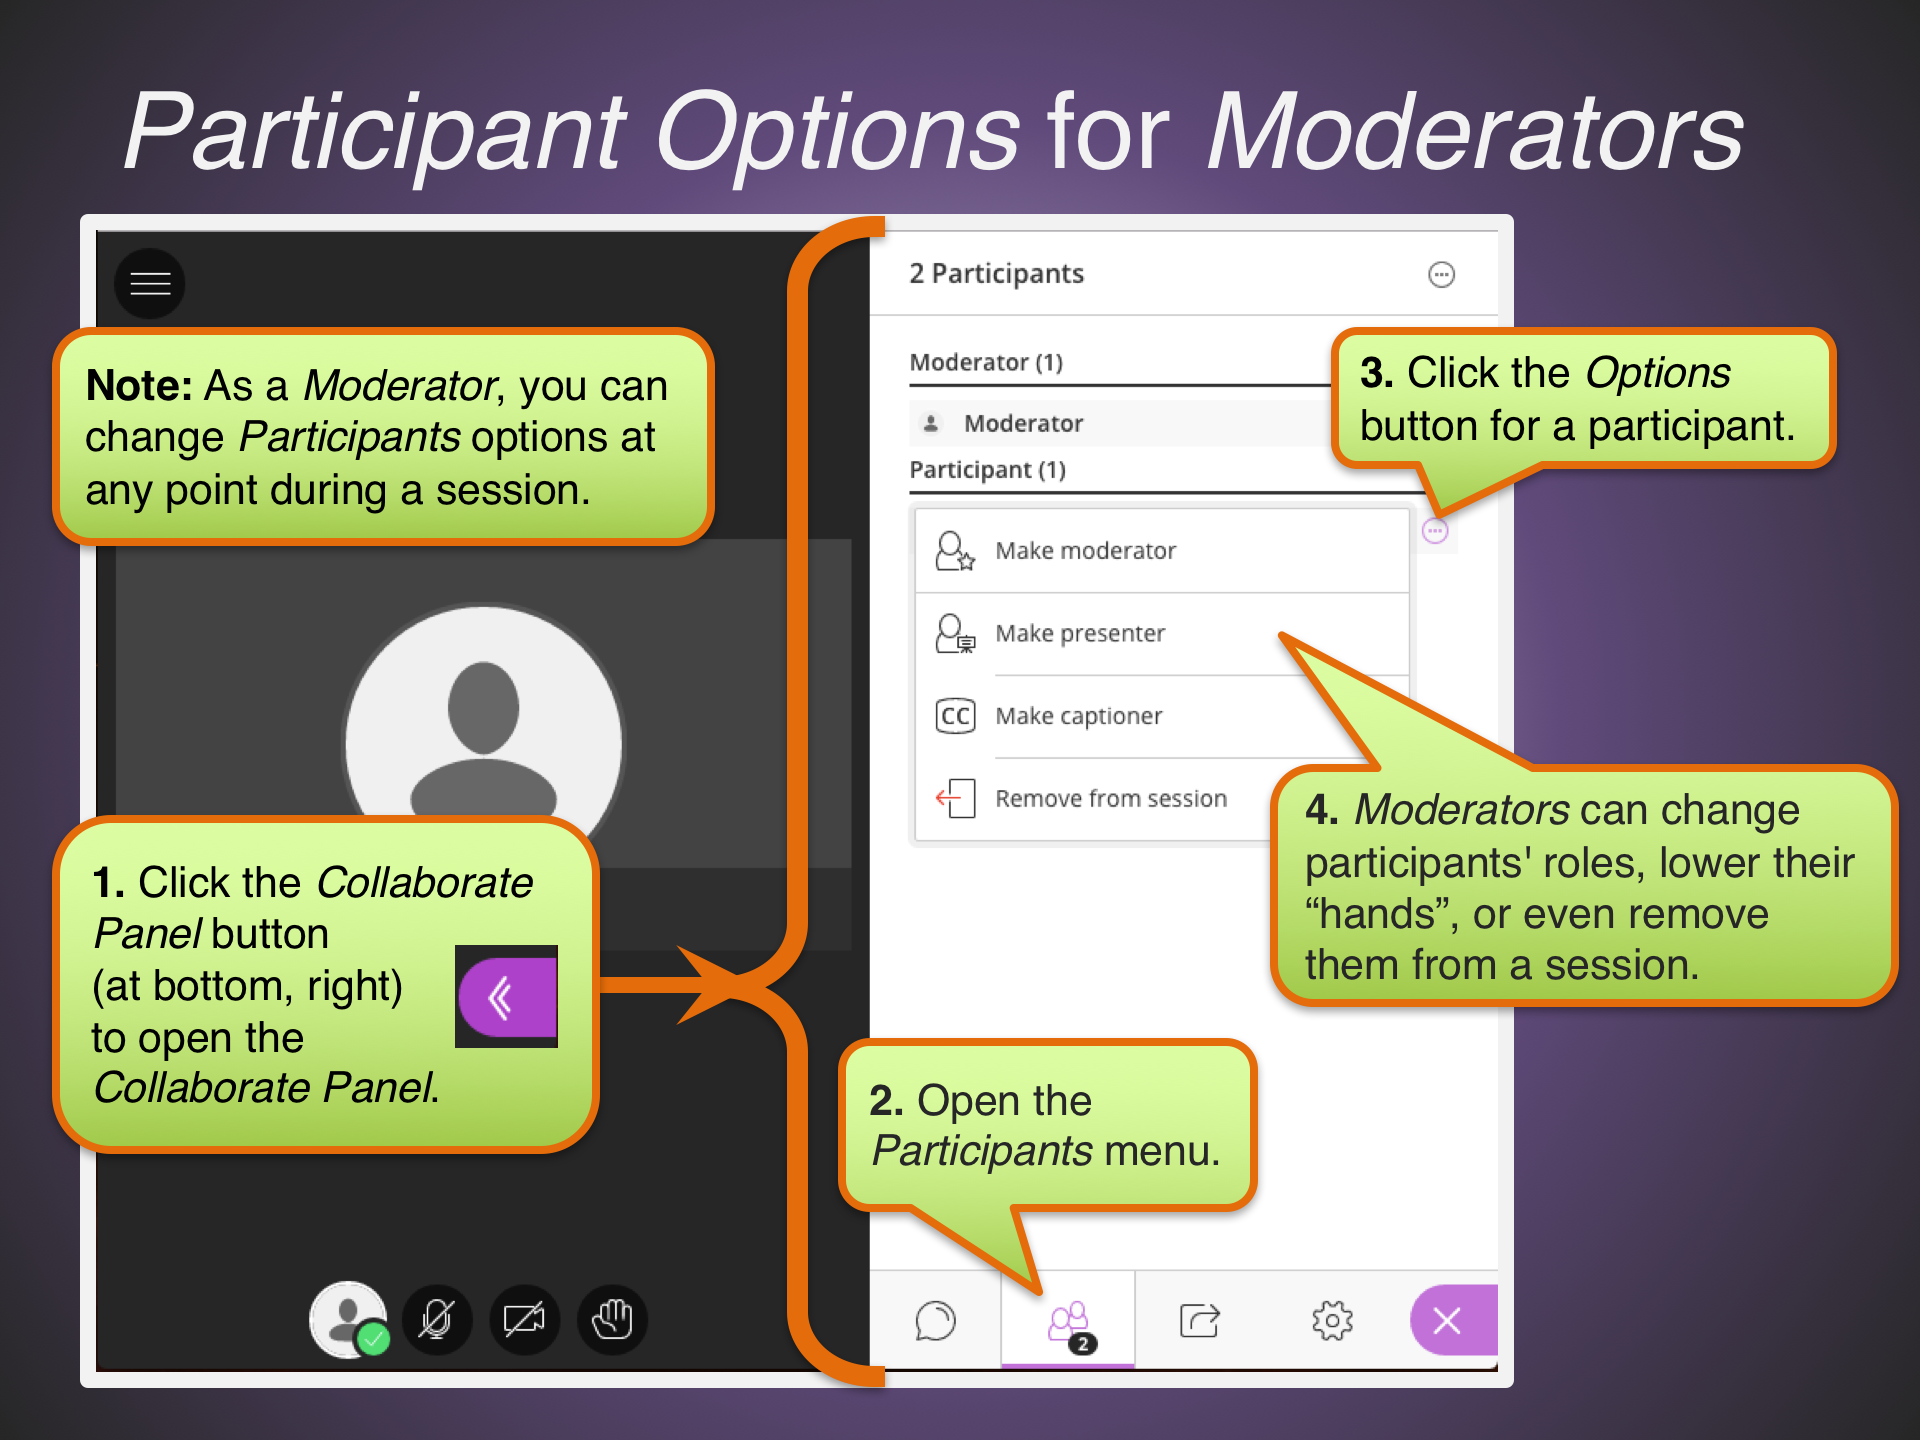 Participant Options for Moderators